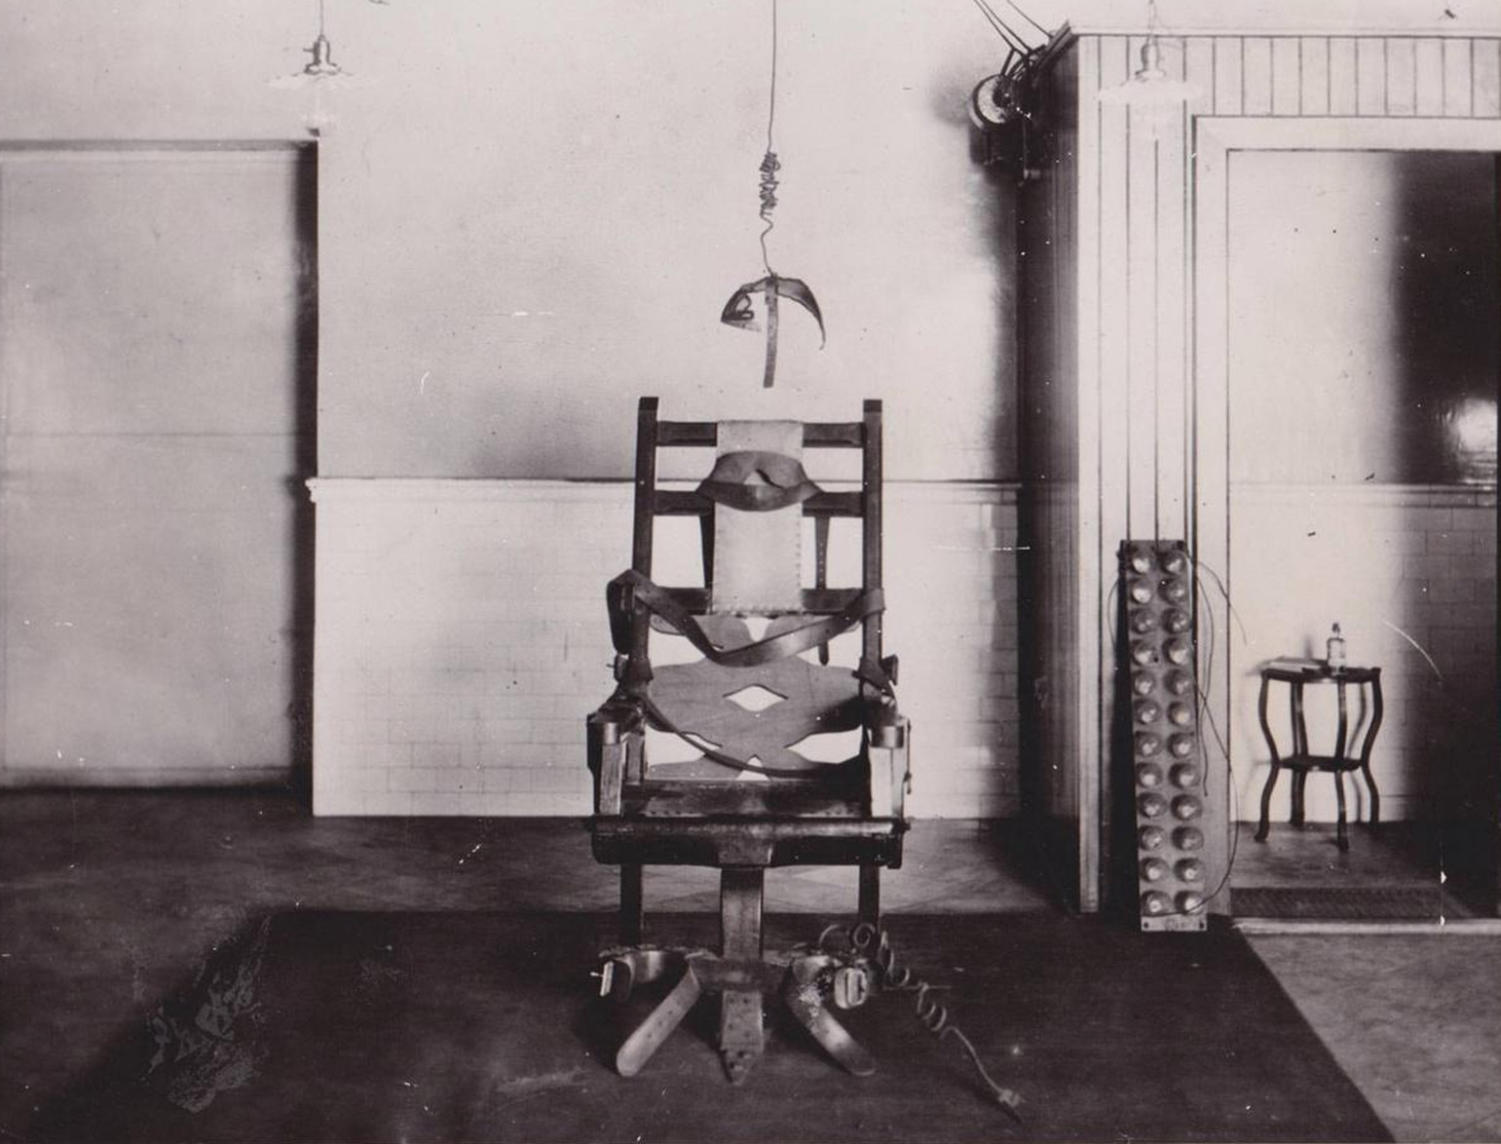 The original and first electric chair that was used to execute a prisoner on August 6, 1890 in Auburn, NY. The chair was destroyed in a prison riot and fire on July 28, 1929 (StuffNobodyCaresAbout.com)